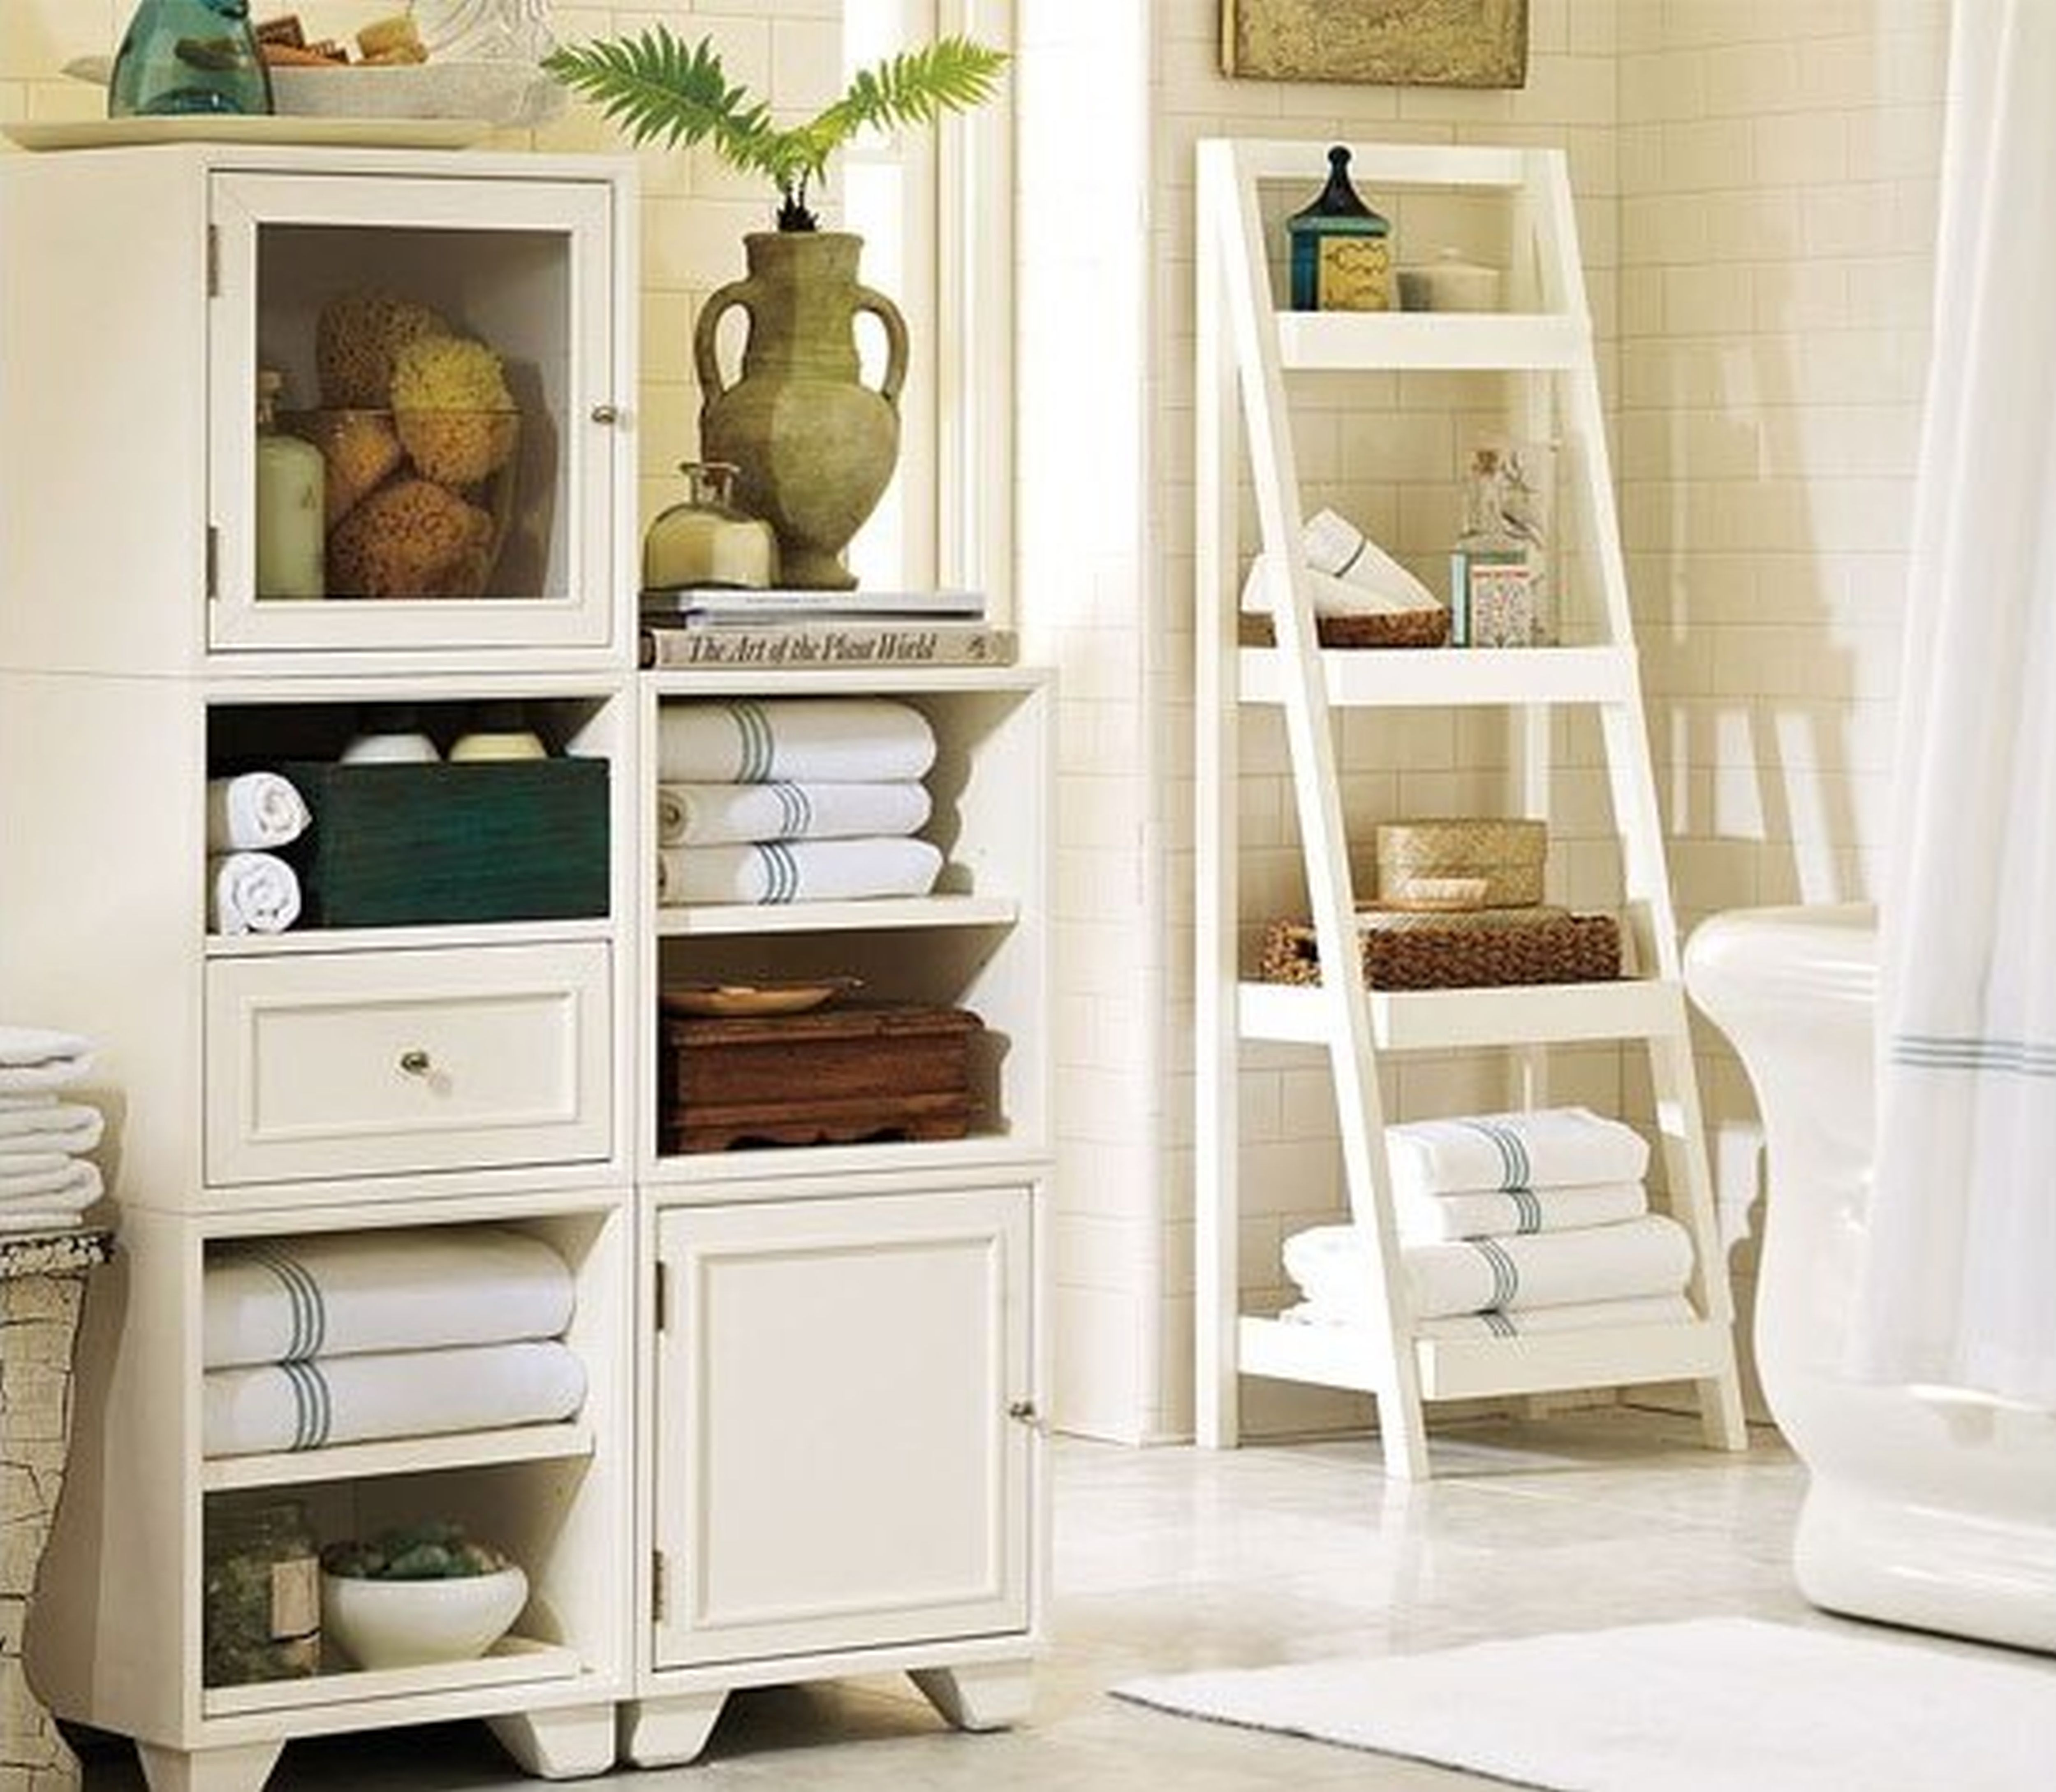 Add Glamour With Small Vintage Bathroom Ideas bathroom decor ideas use ladder shelves for storage